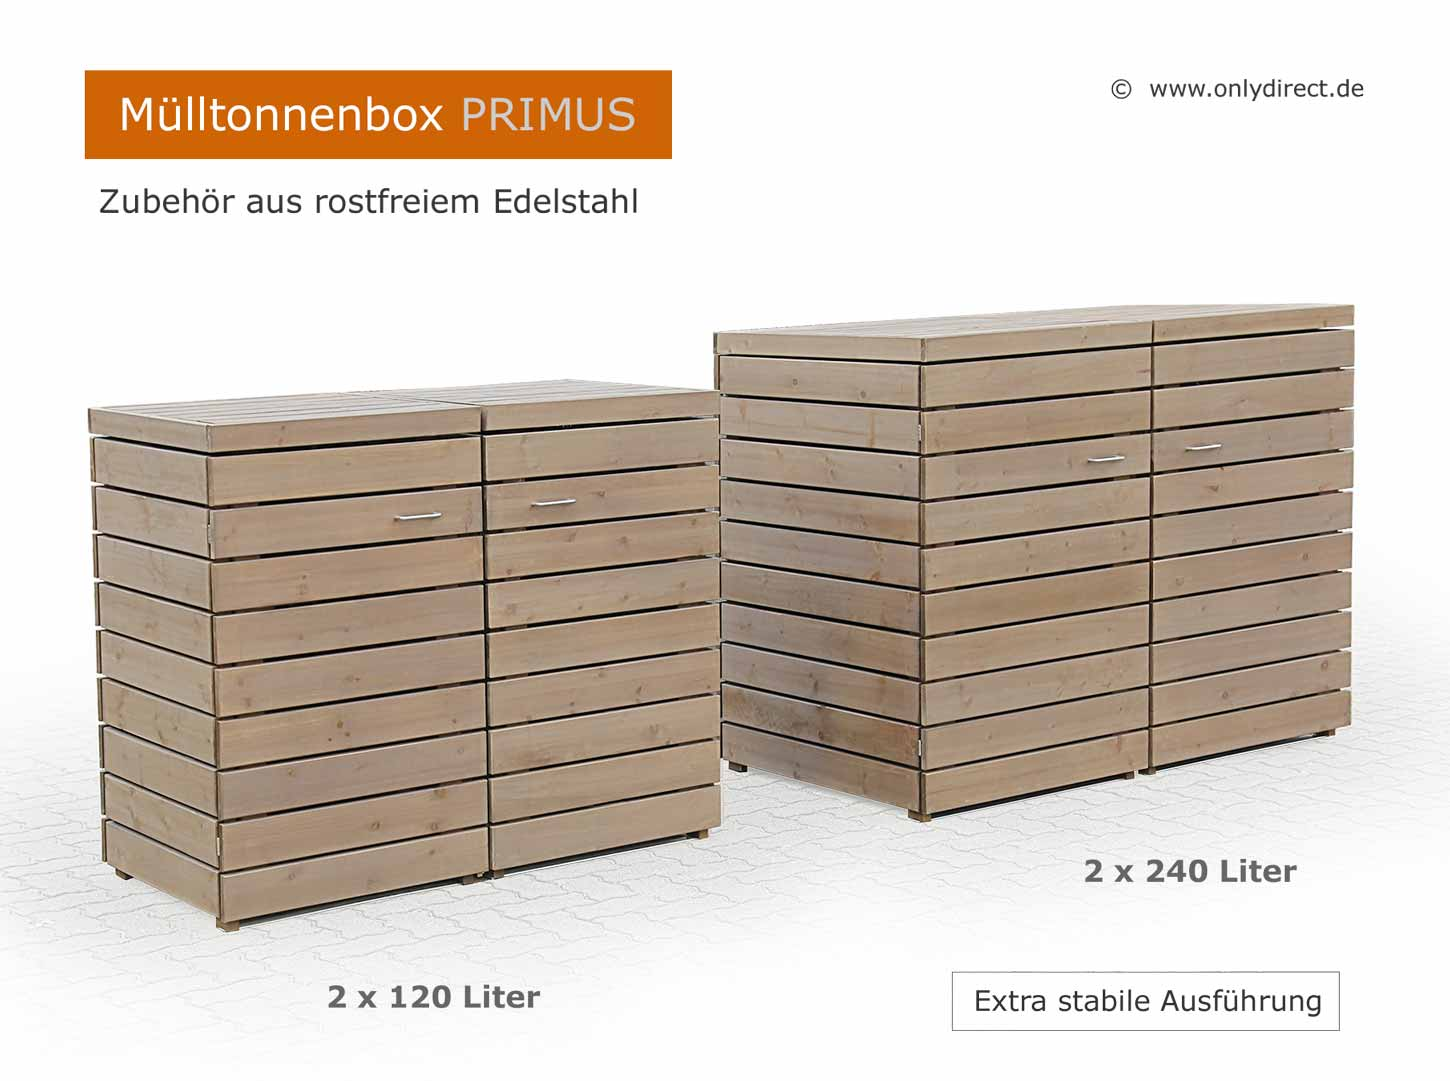 friesenbank shop moderne m lltonnenbox holz fsc zeder f r 3 x 240 liter. Black Bedroom Furniture Sets. Home Design Ideas